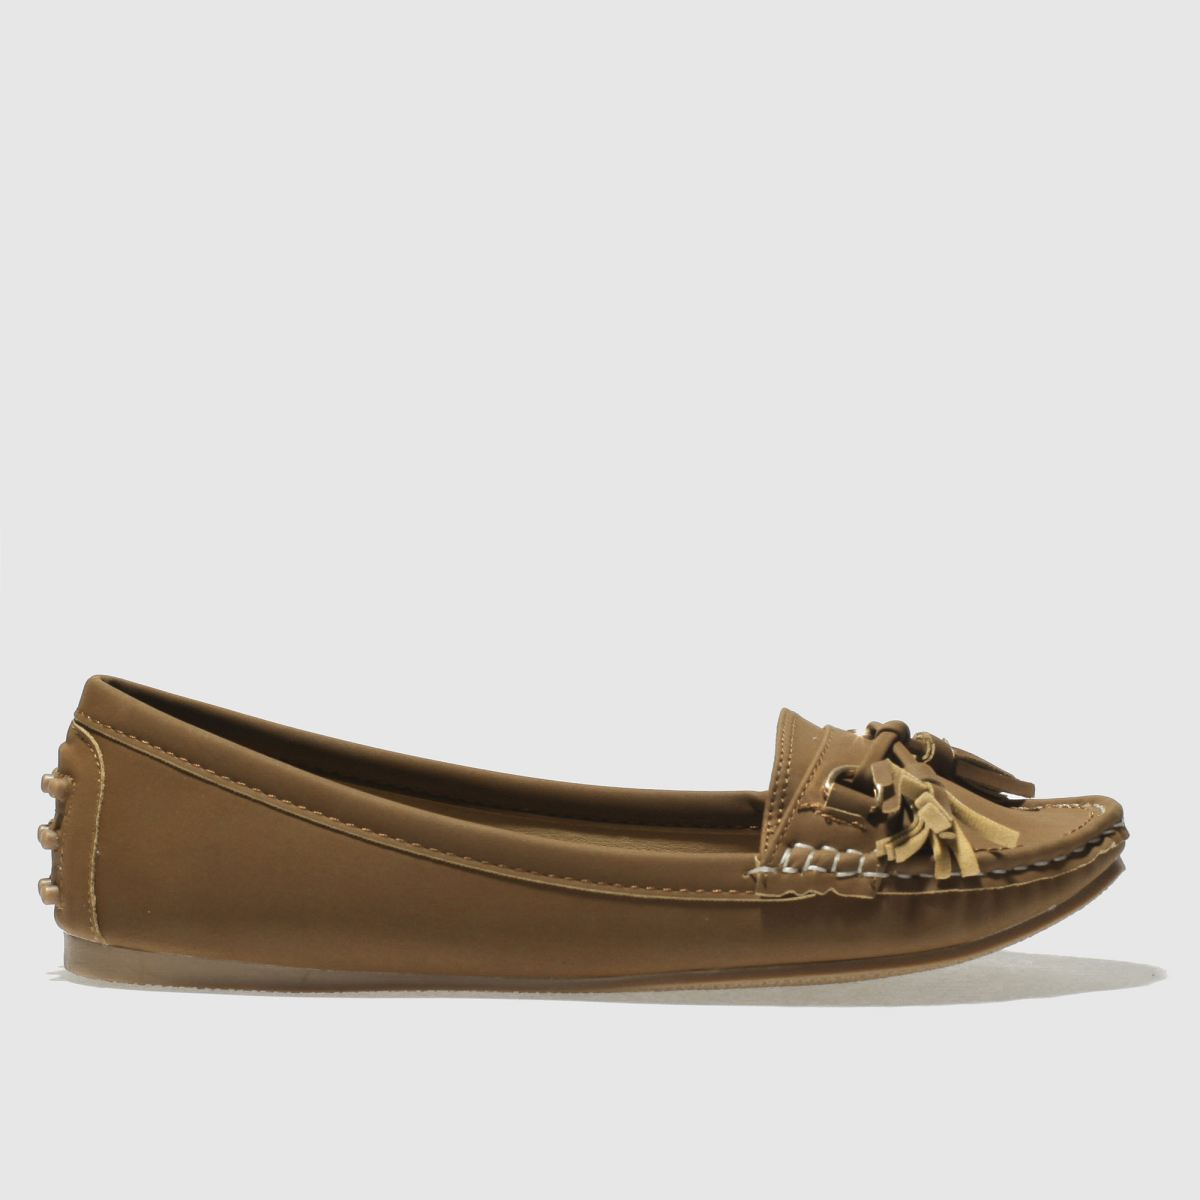 Schuh Tan Preppy Flat Shoes